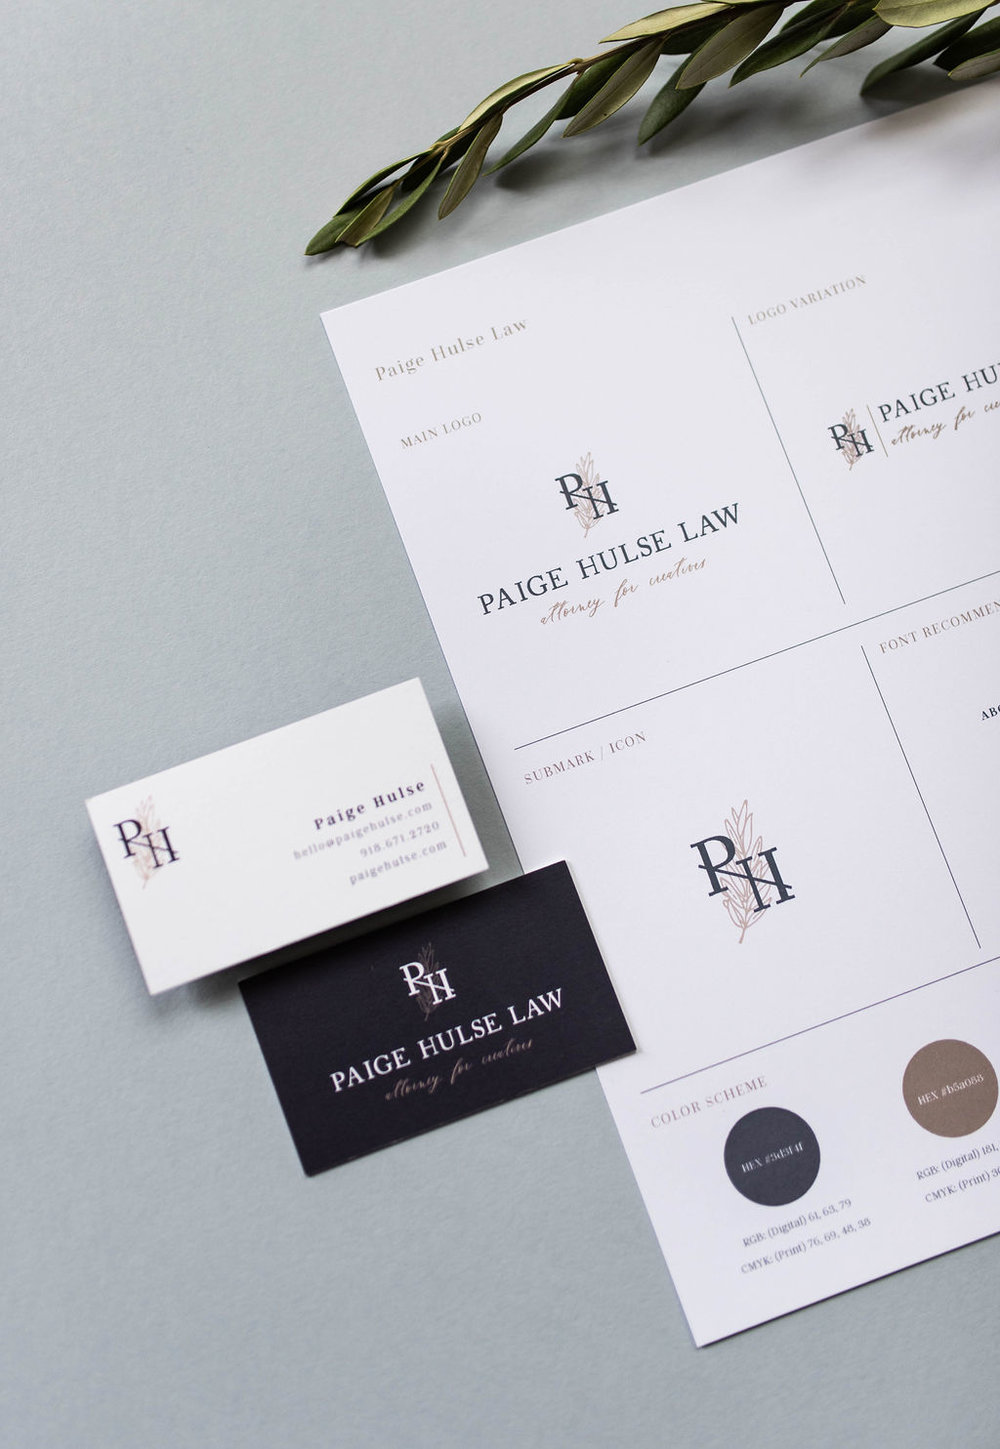 Paige Hulse Law – contract law firm – Hayley Bigham Designs – Tulsa Oklahoma Branding Studio – professional structured logo design